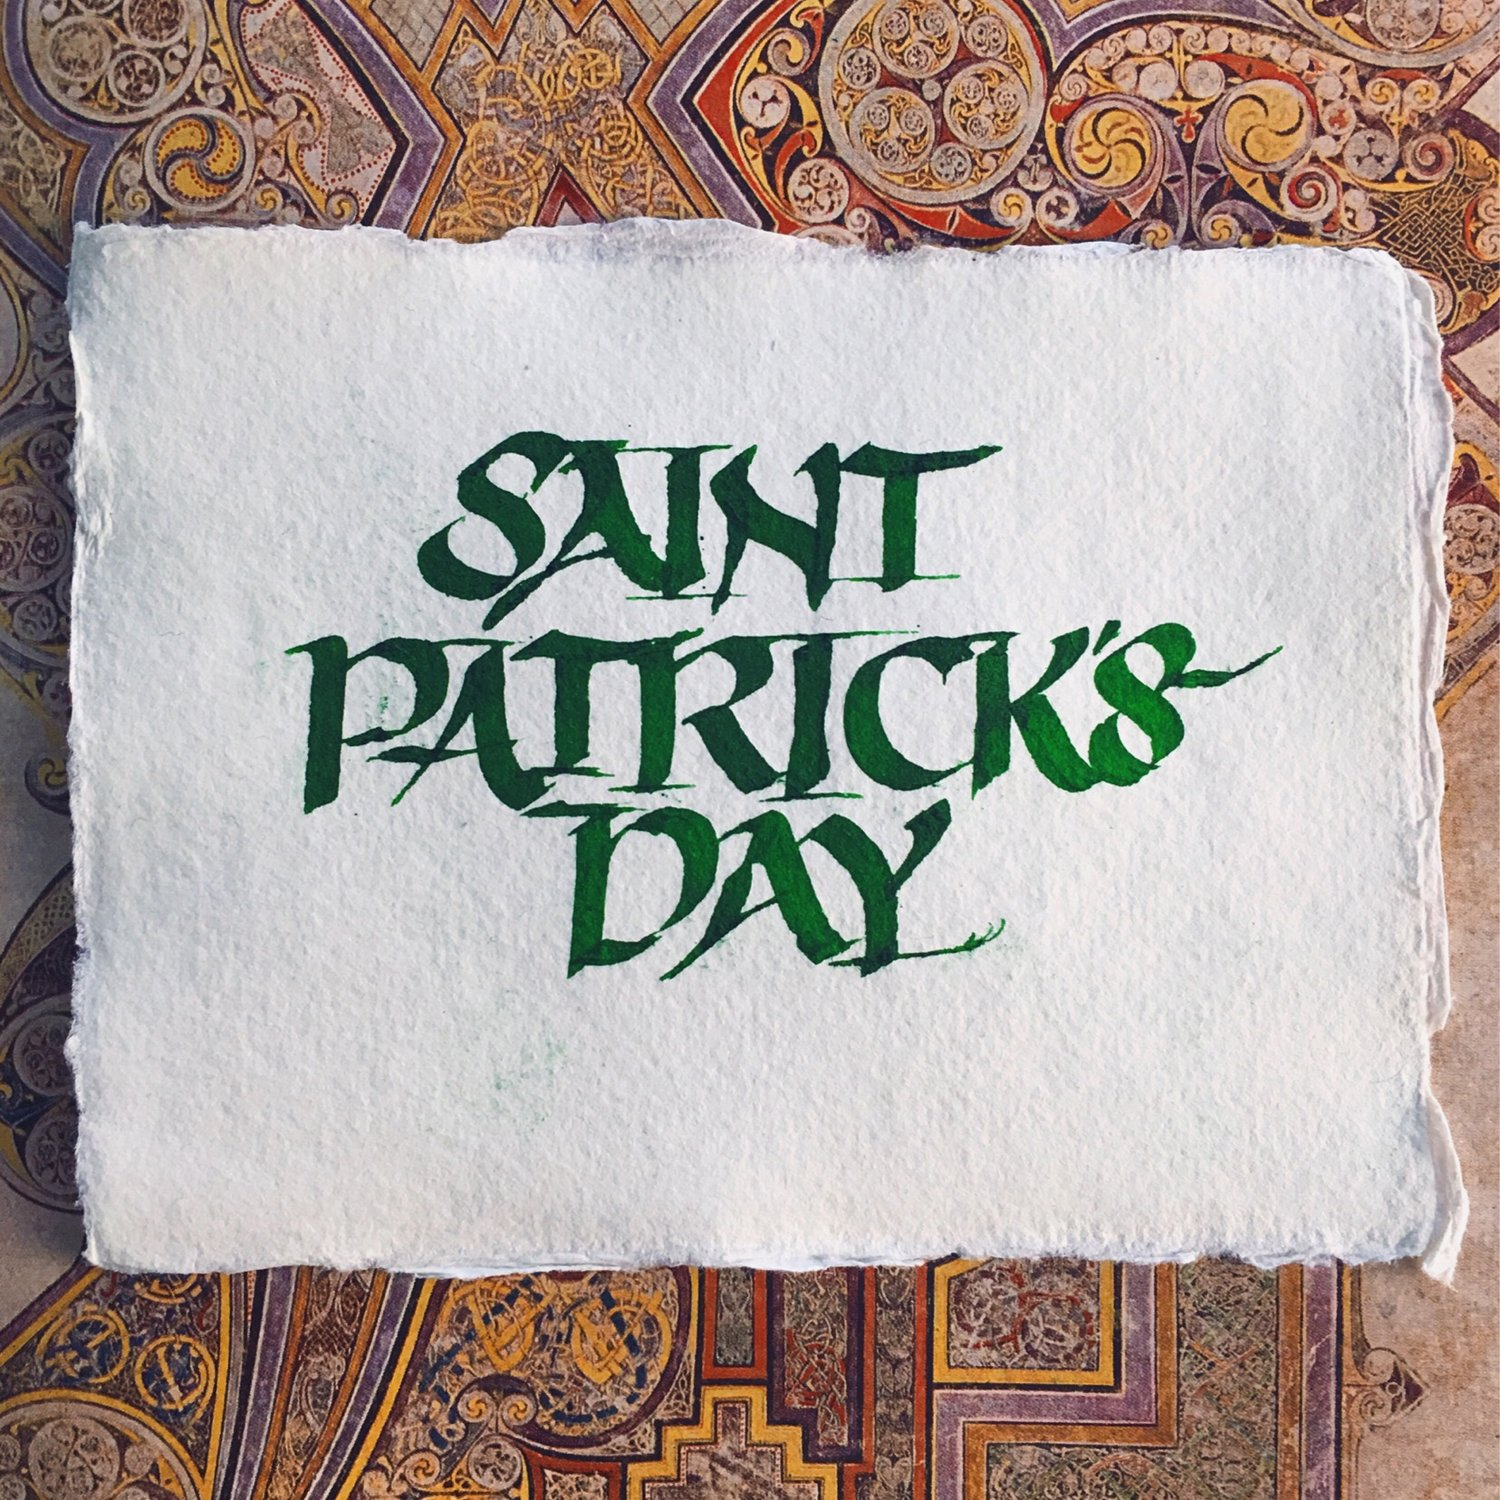 St. Patrick's Day calligraphy in uncial // by www.chavelli.com